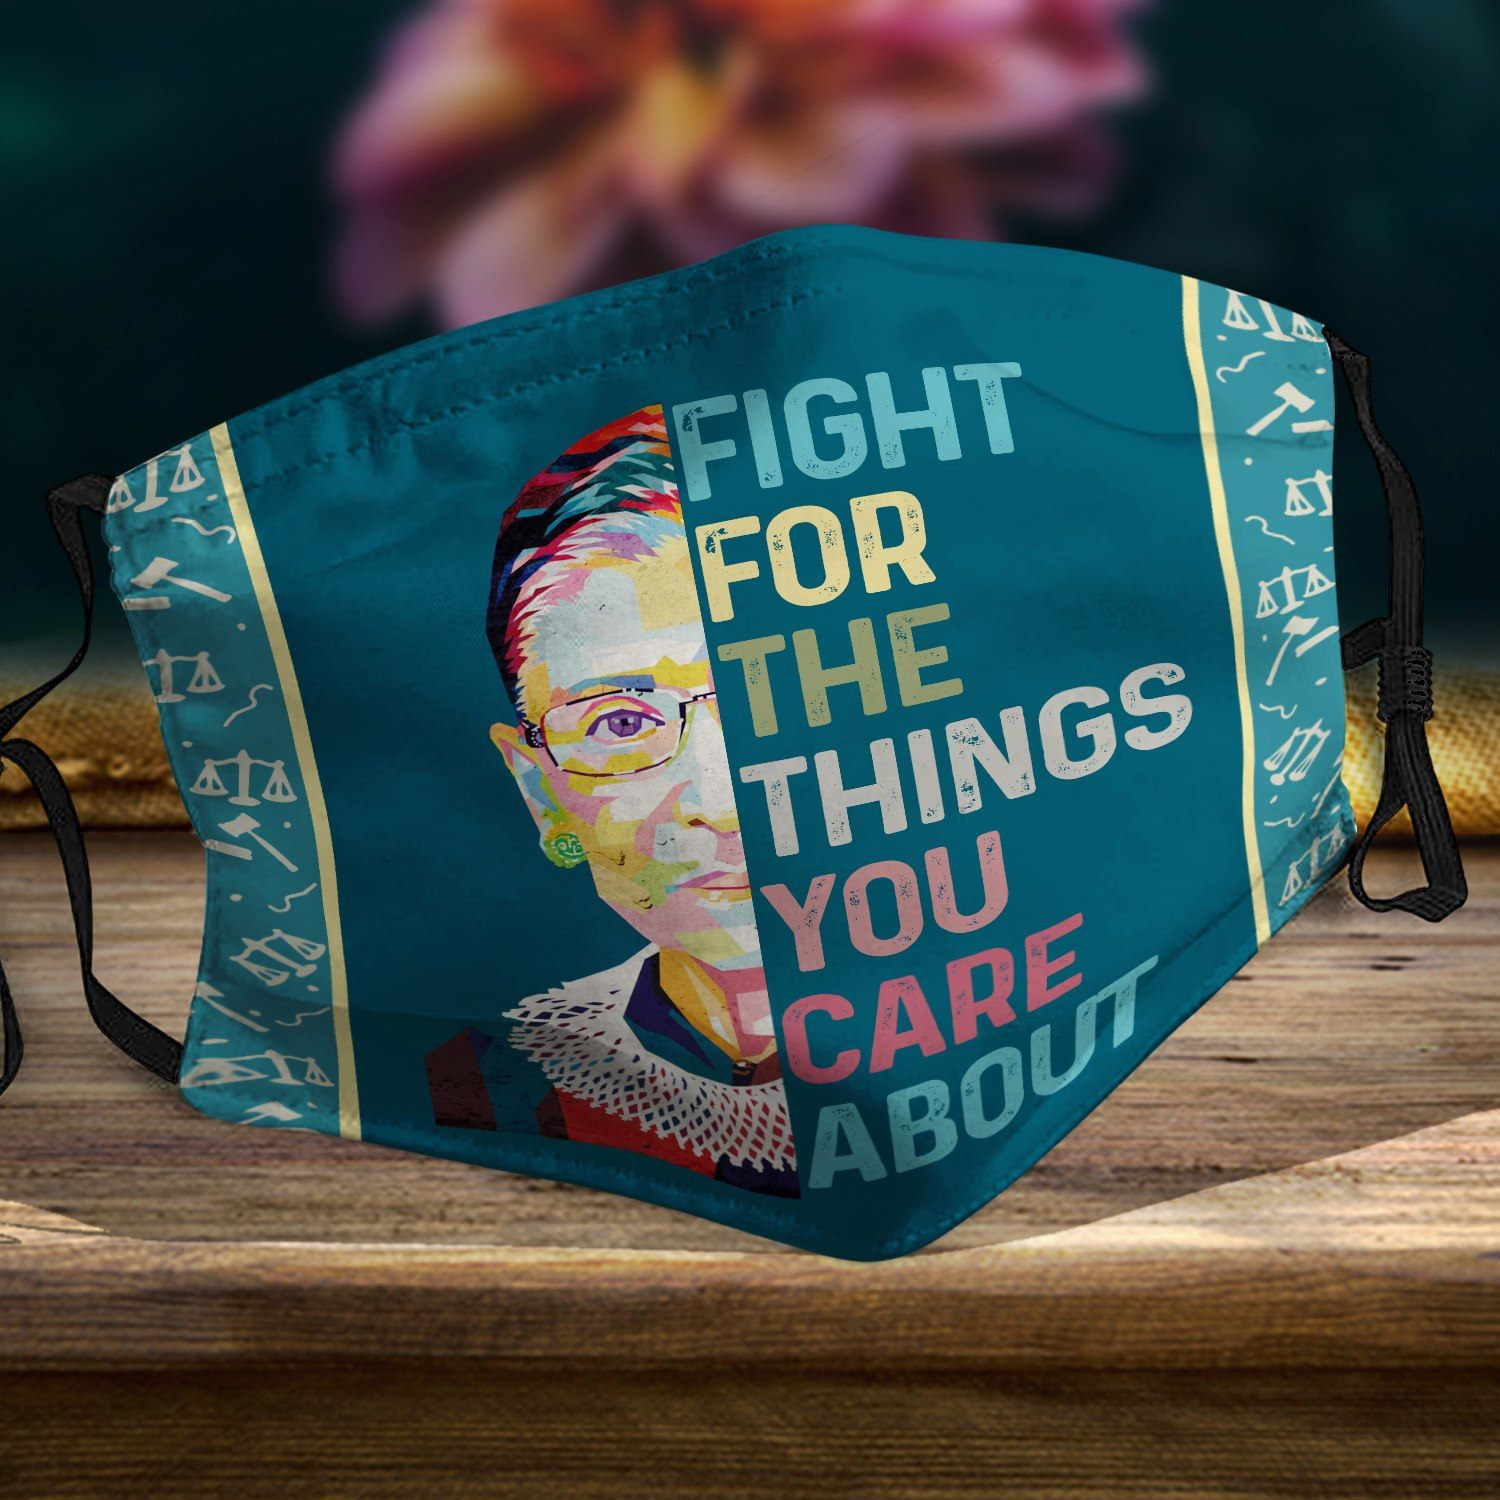 Fight for the things you care about - Ruth Bader Ginsburg Notorious RBG 3